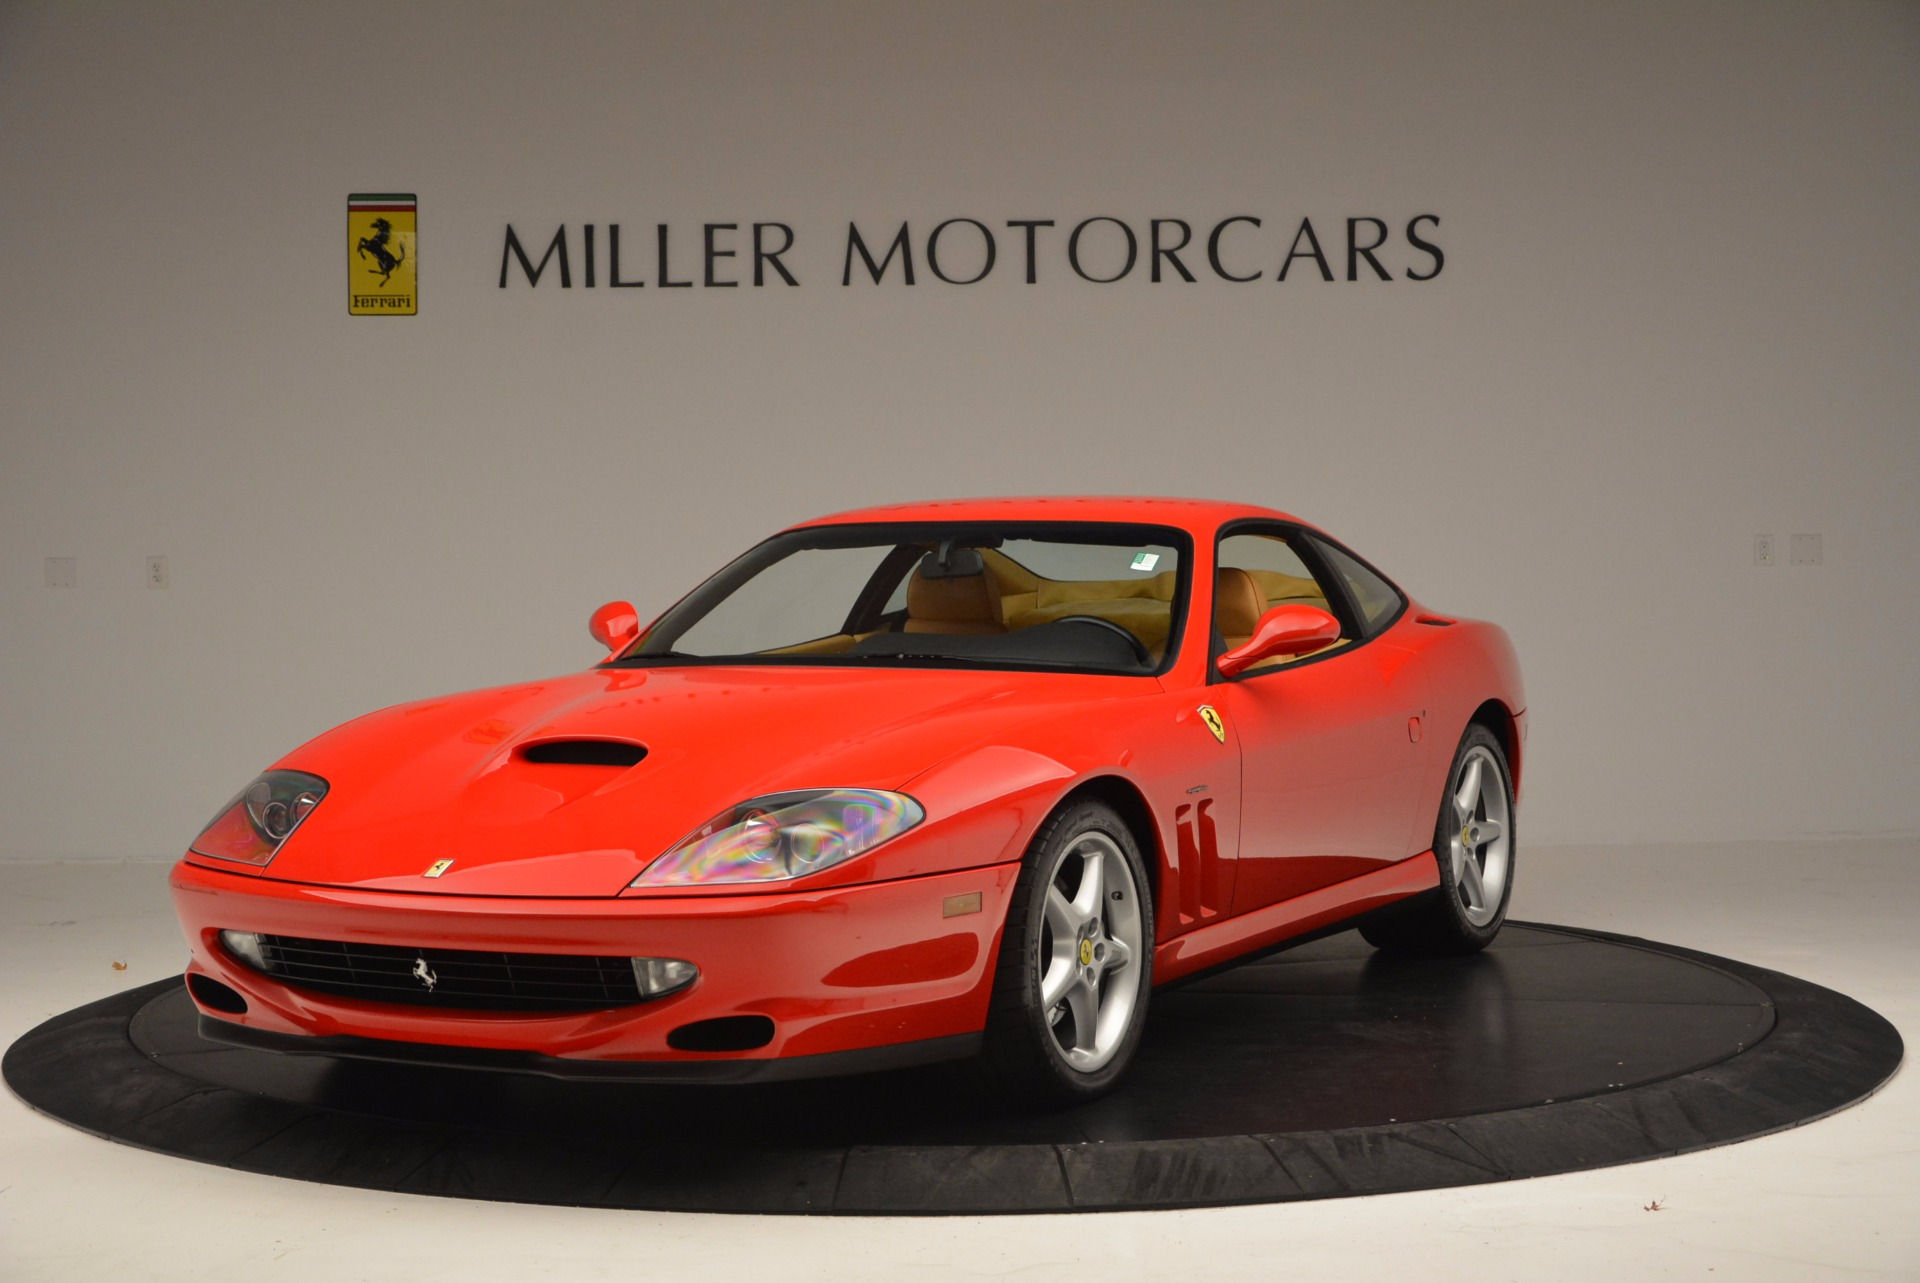 Used 2000 Ferrari 550 Maranello for sale Sold at Bentley Greenwich in Greenwich CT 06830 1